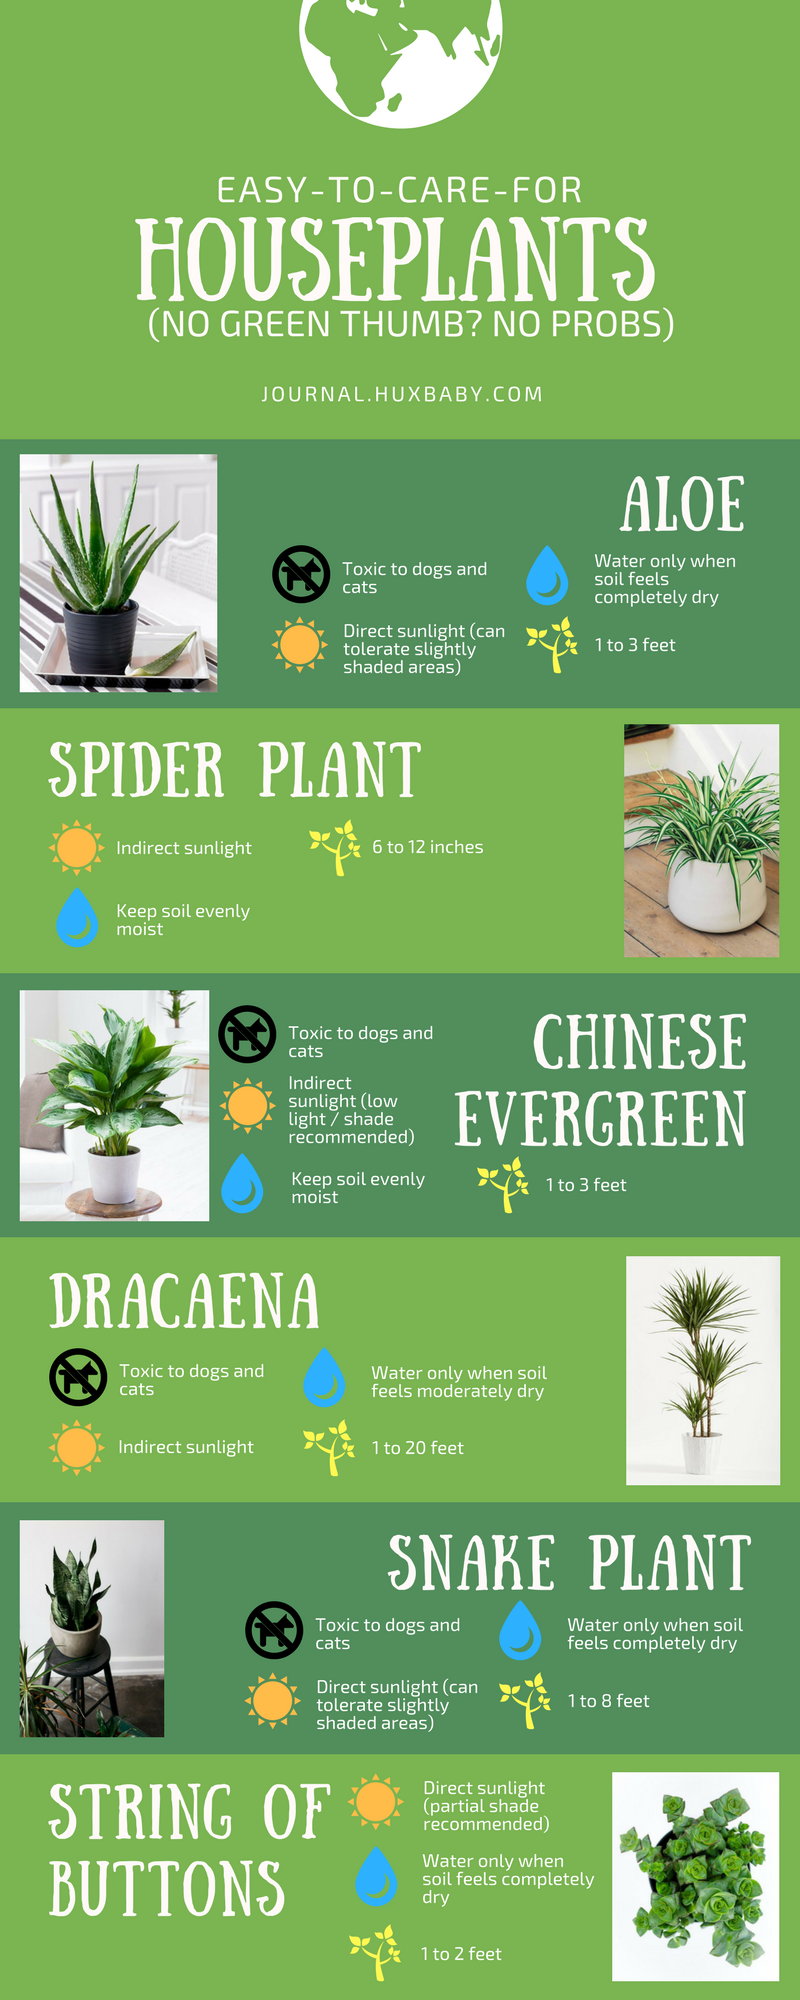 Houseplants Infographic(1).png